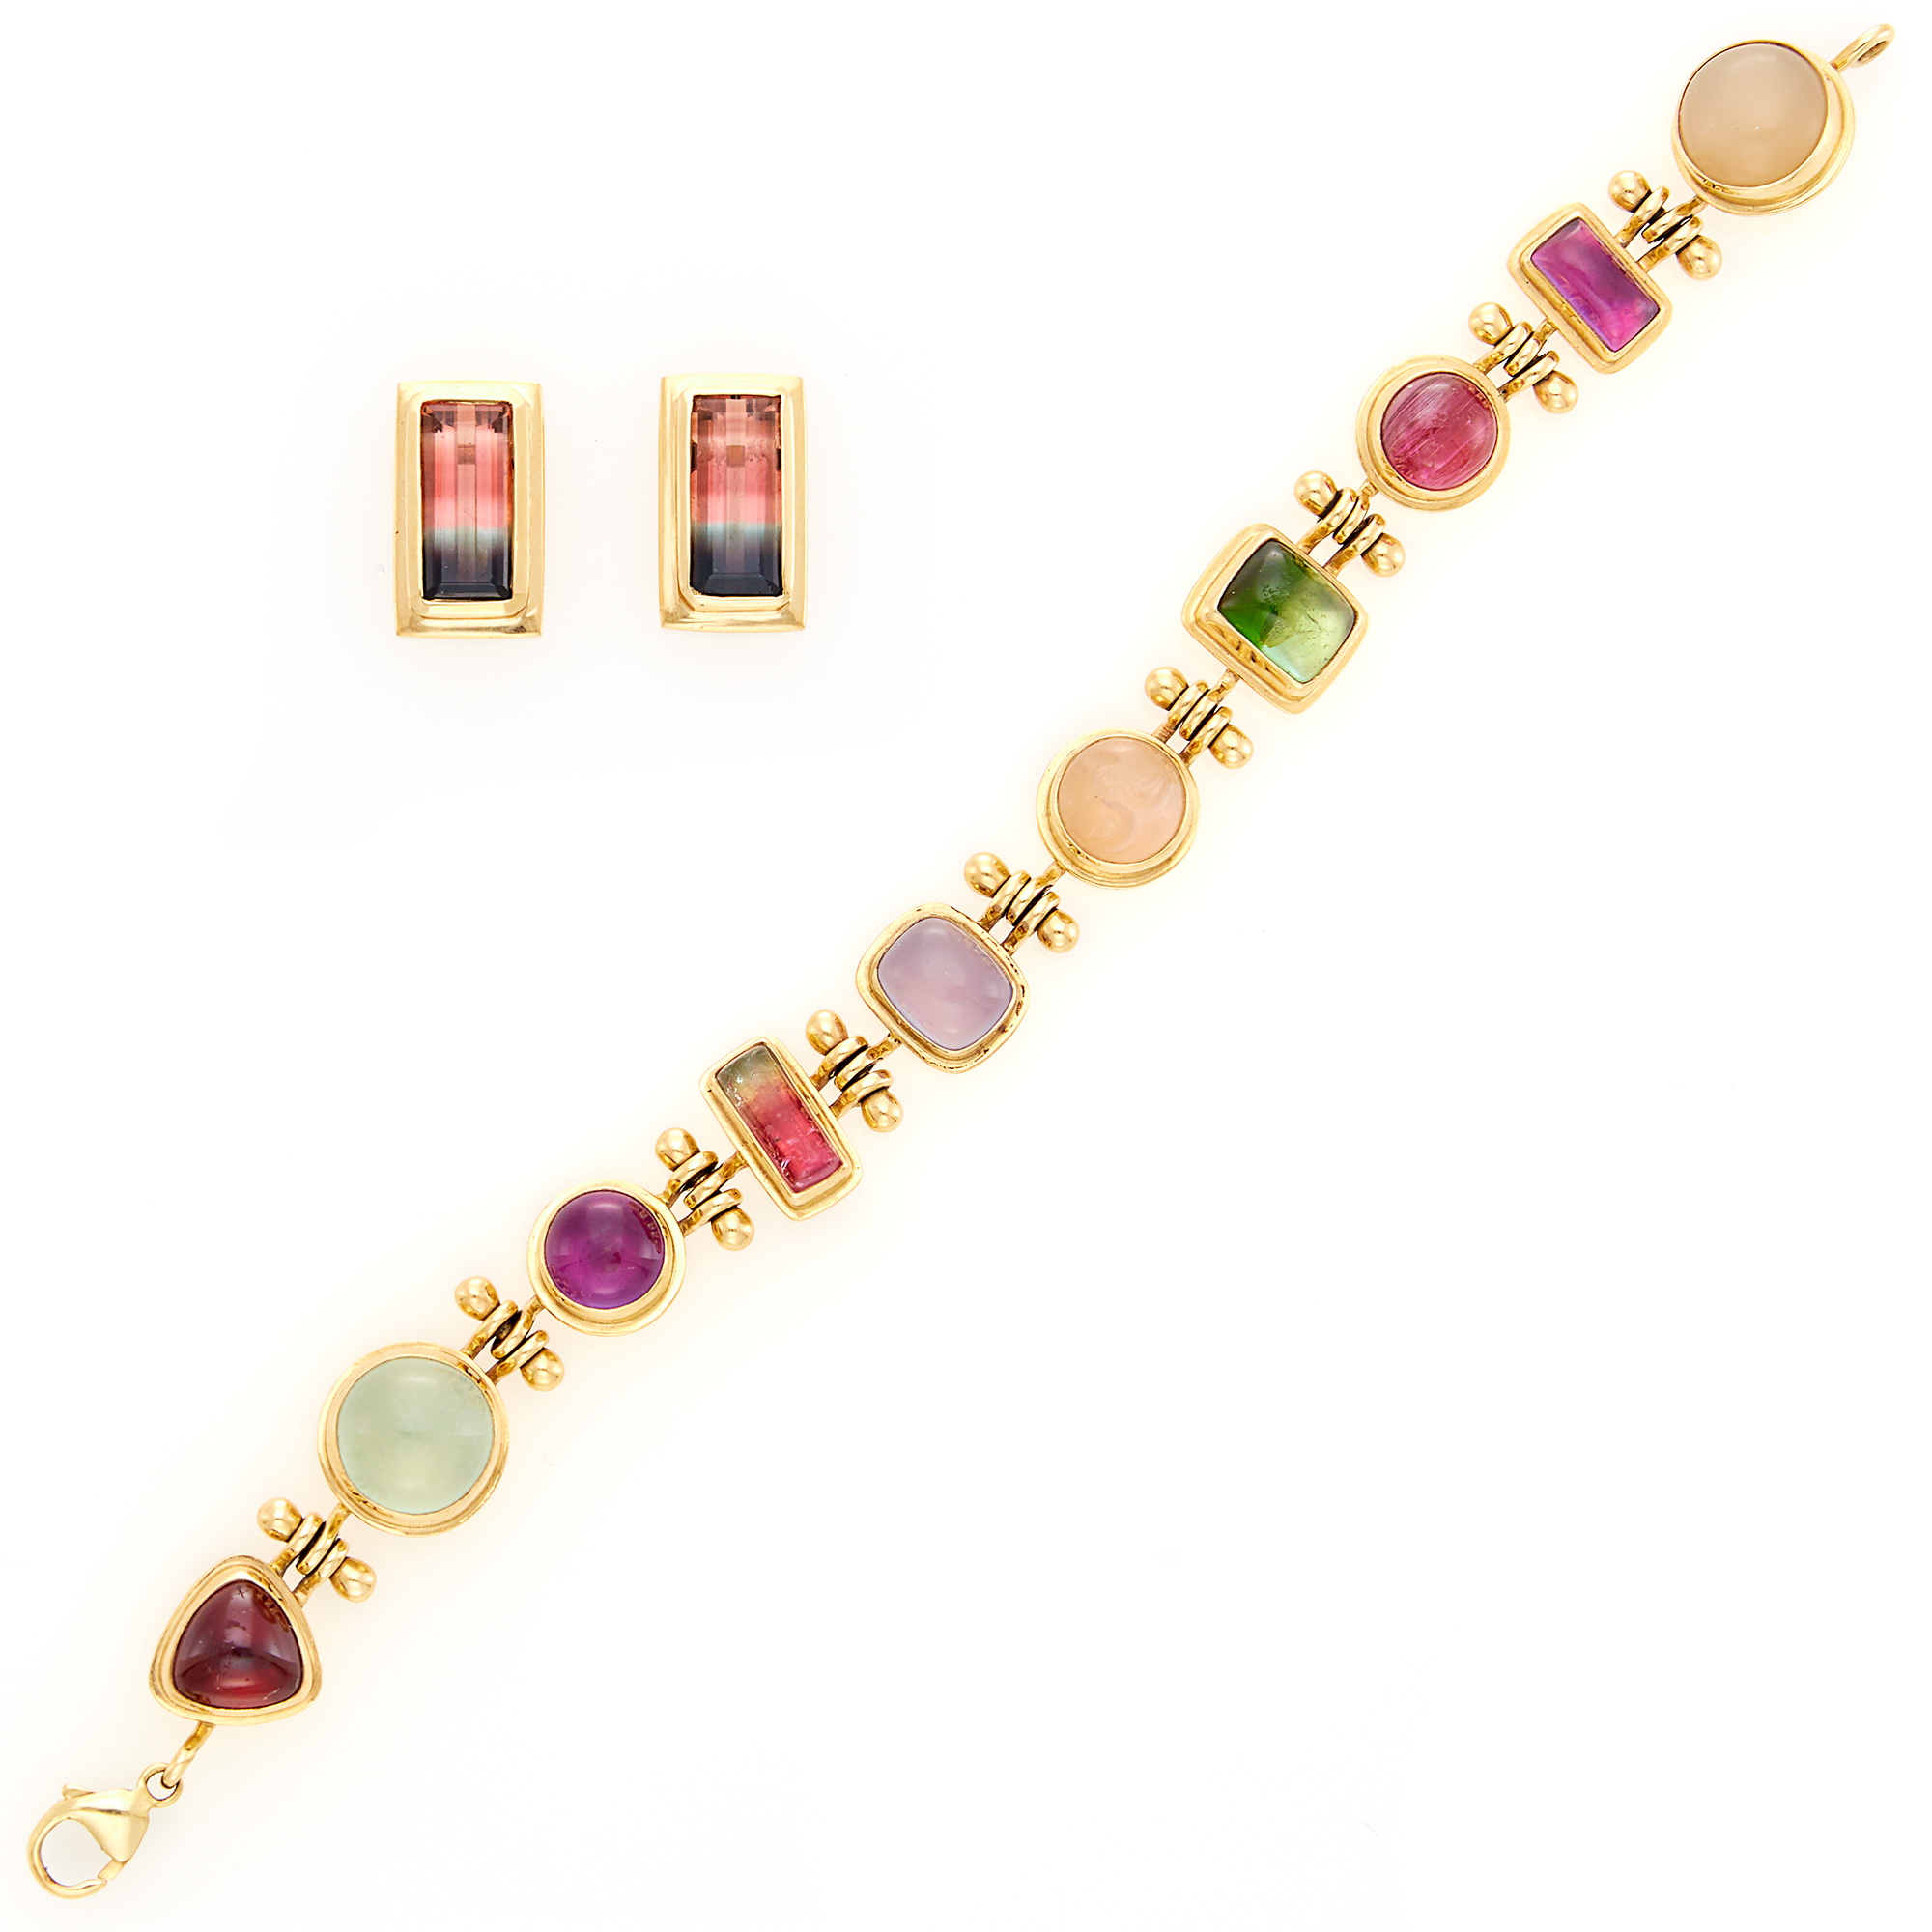 Lot image - Gold and Cabochon Colored Stone Bracelet and Pair of Gold and Watermelon Tourmaline Earrings